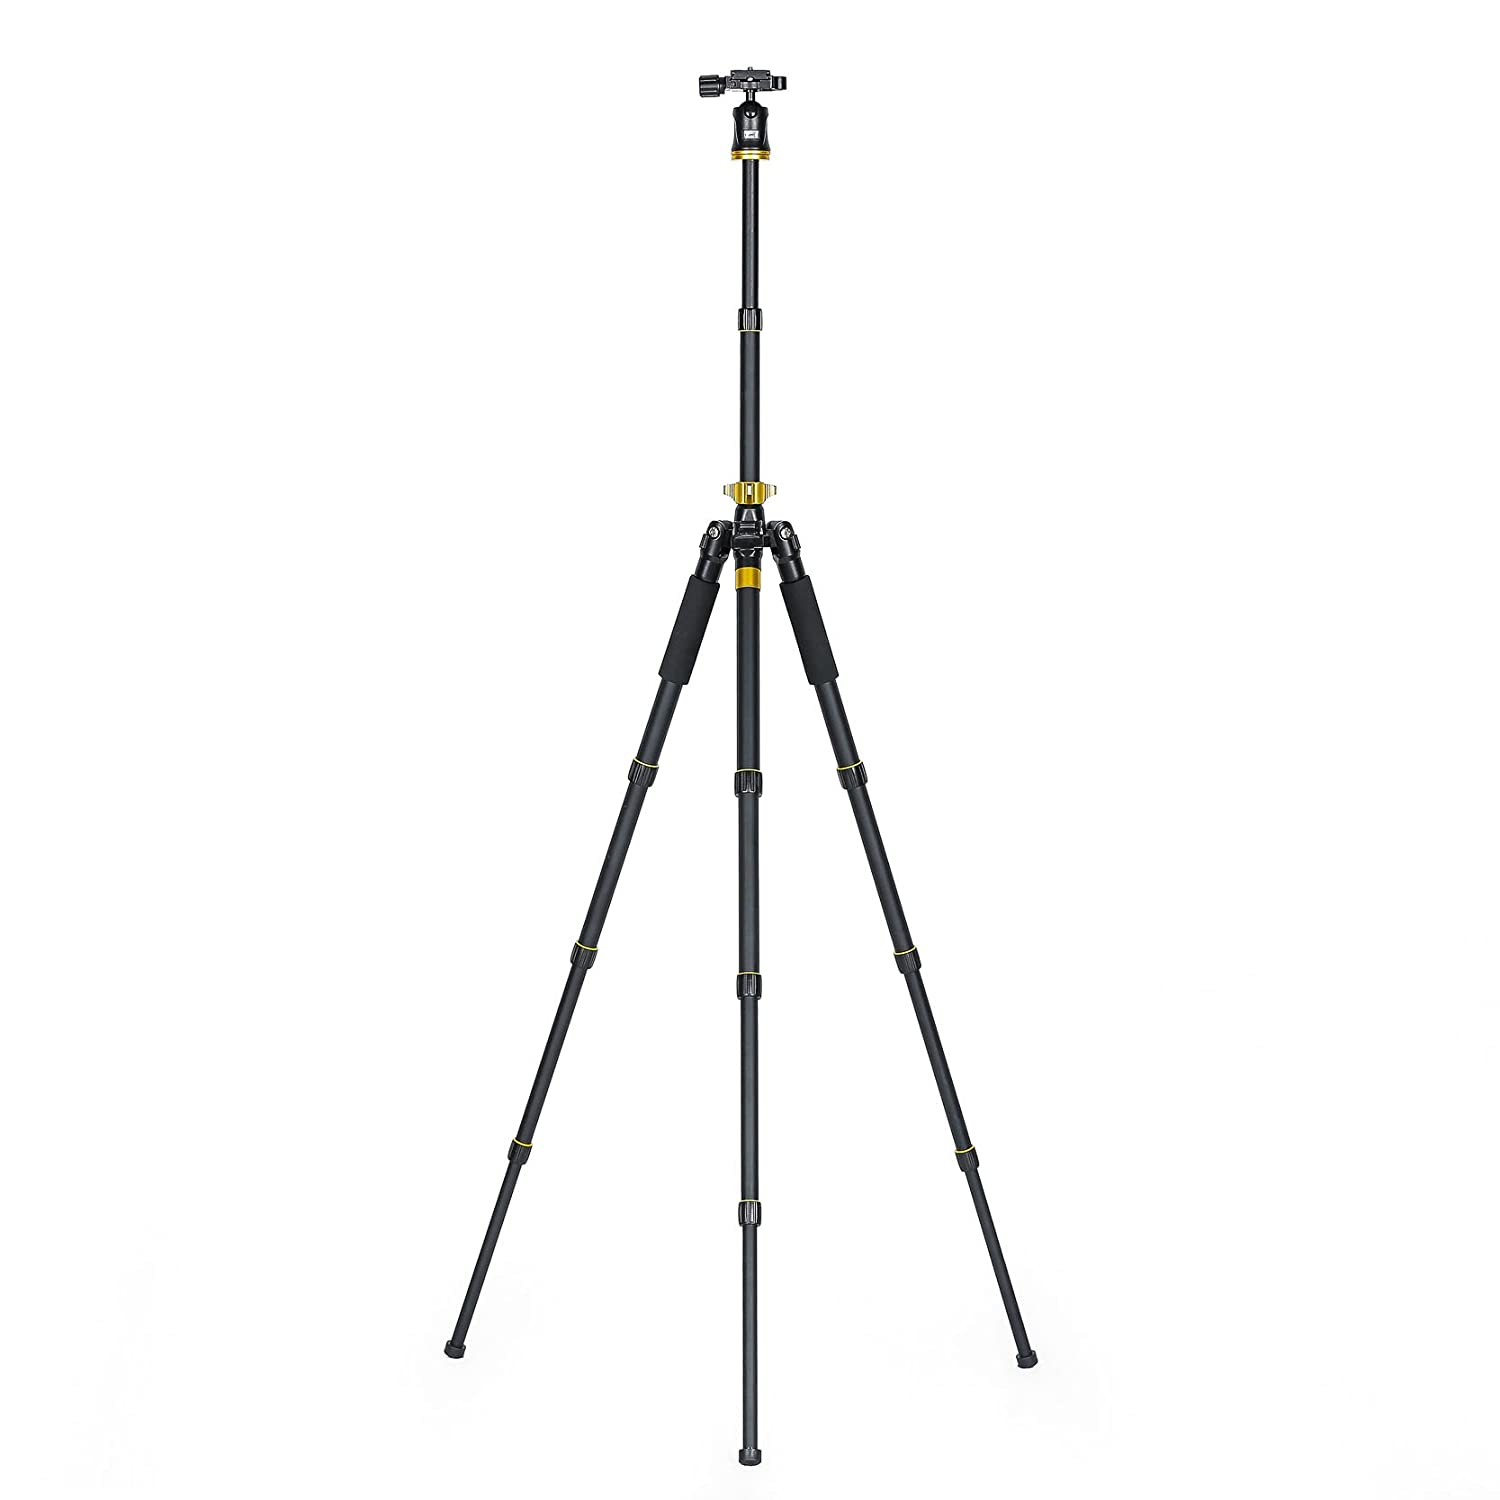 Amazon.com : St -111 Photo Video Tripod/Monopod with Ball Head. : Camera & Photo